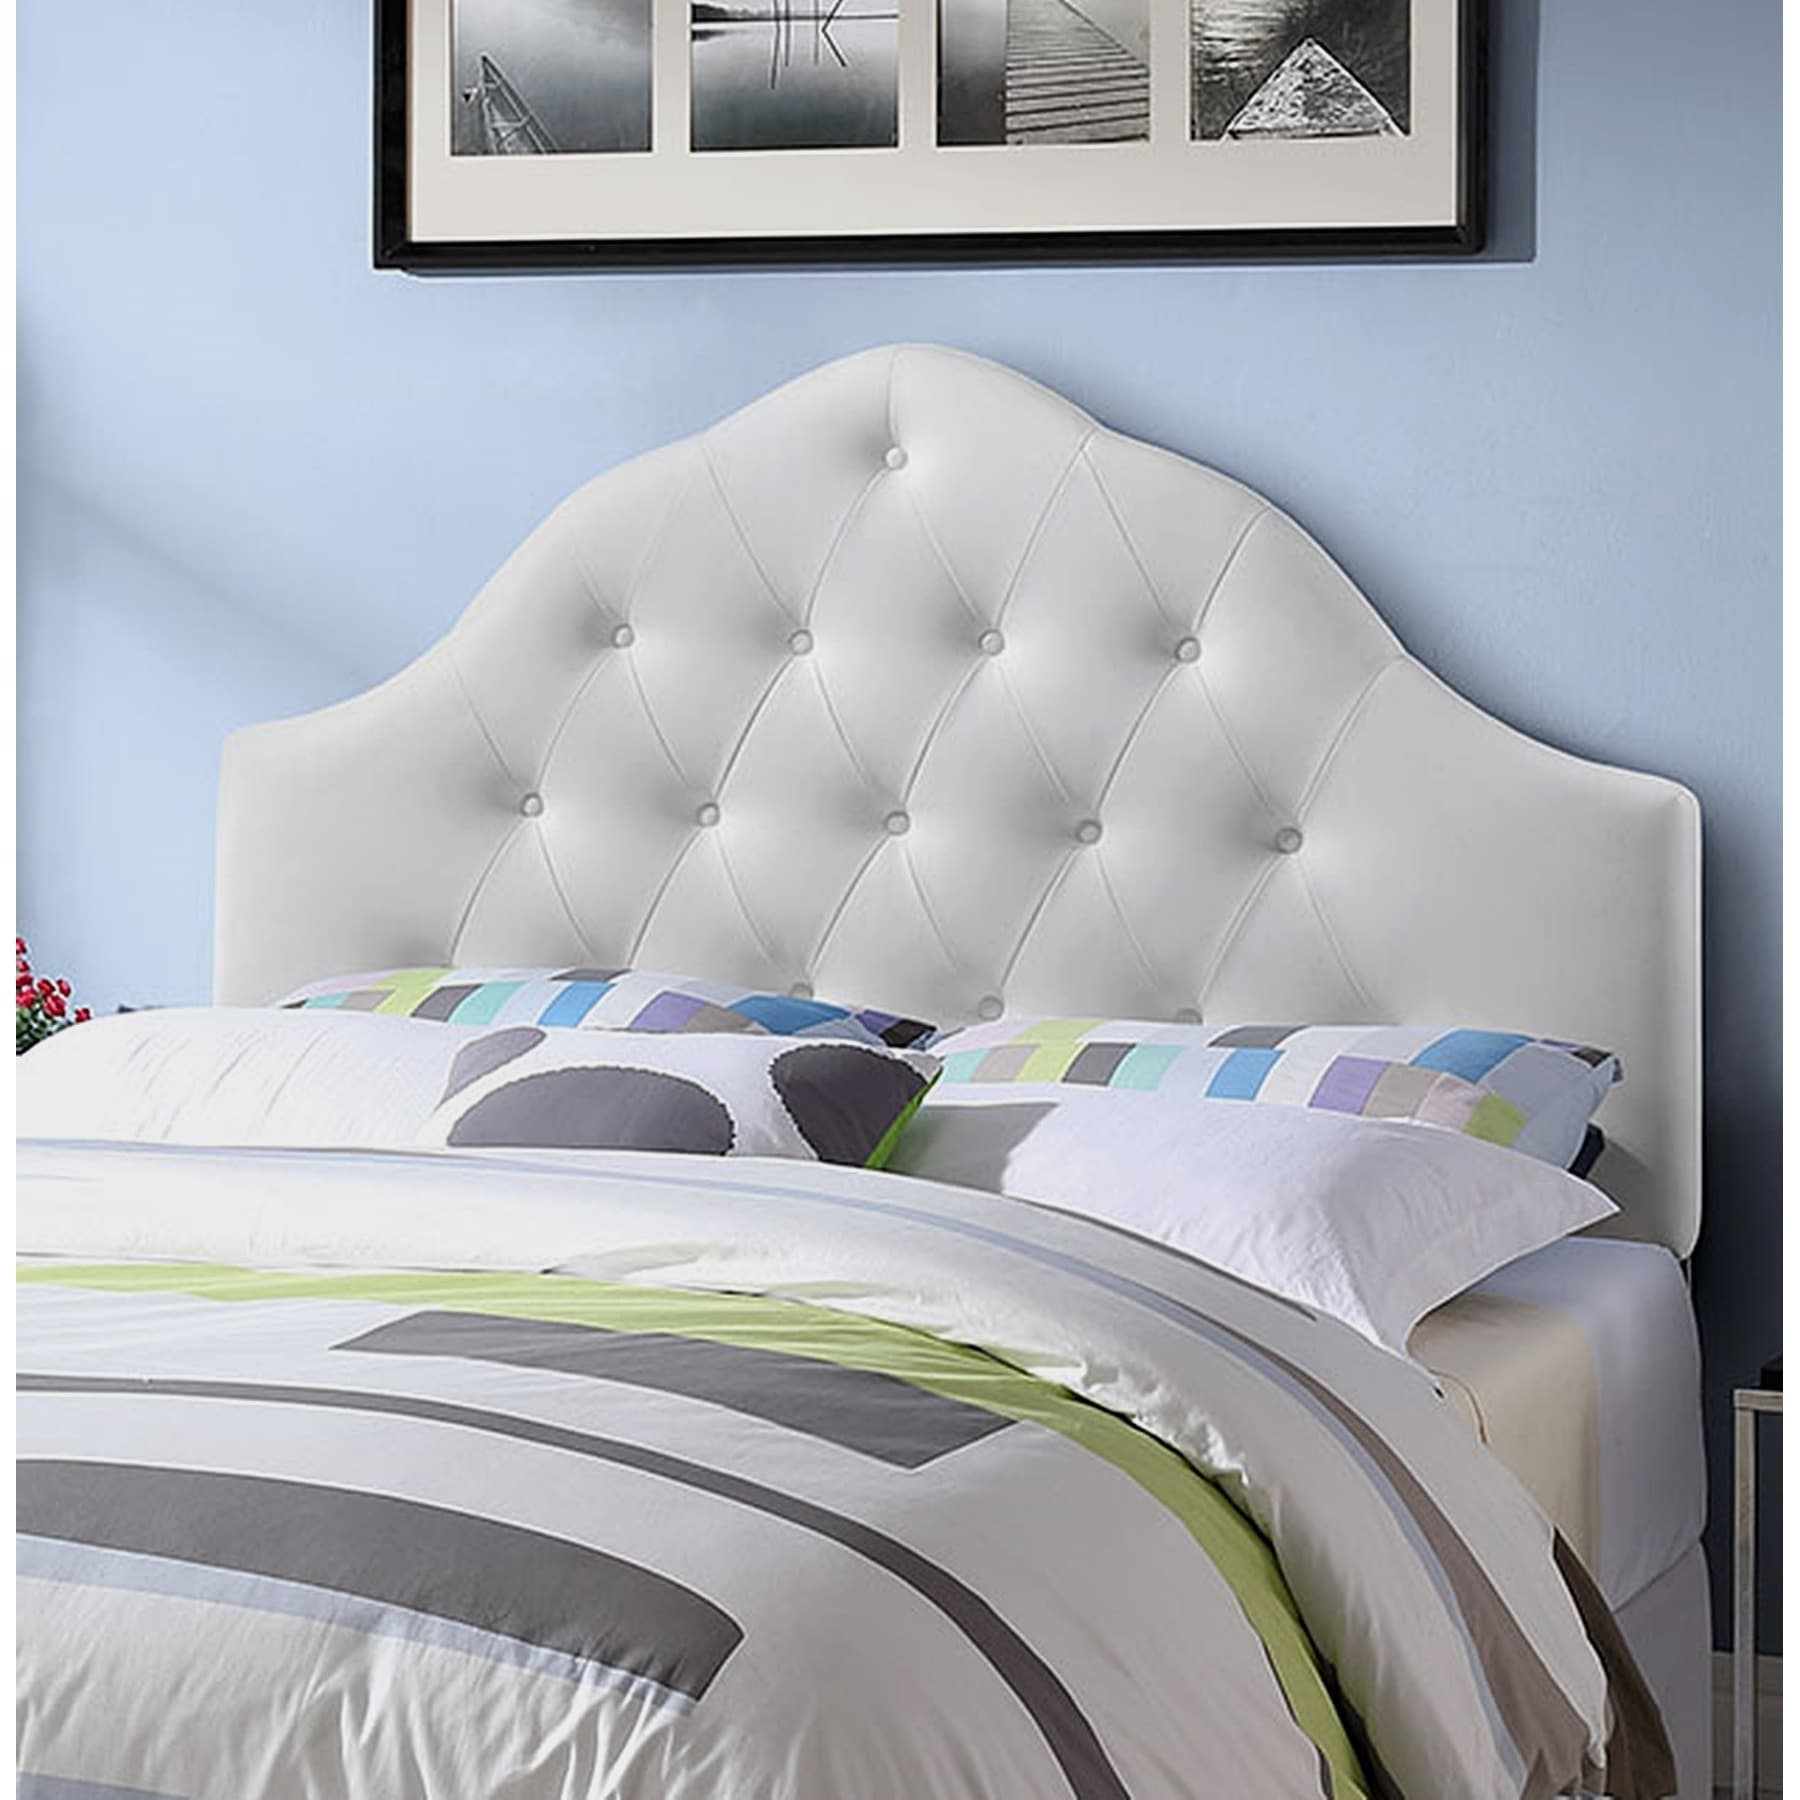 Contemporary Tufted Upholstered King Size Bedroom Headboard in White Vinyl